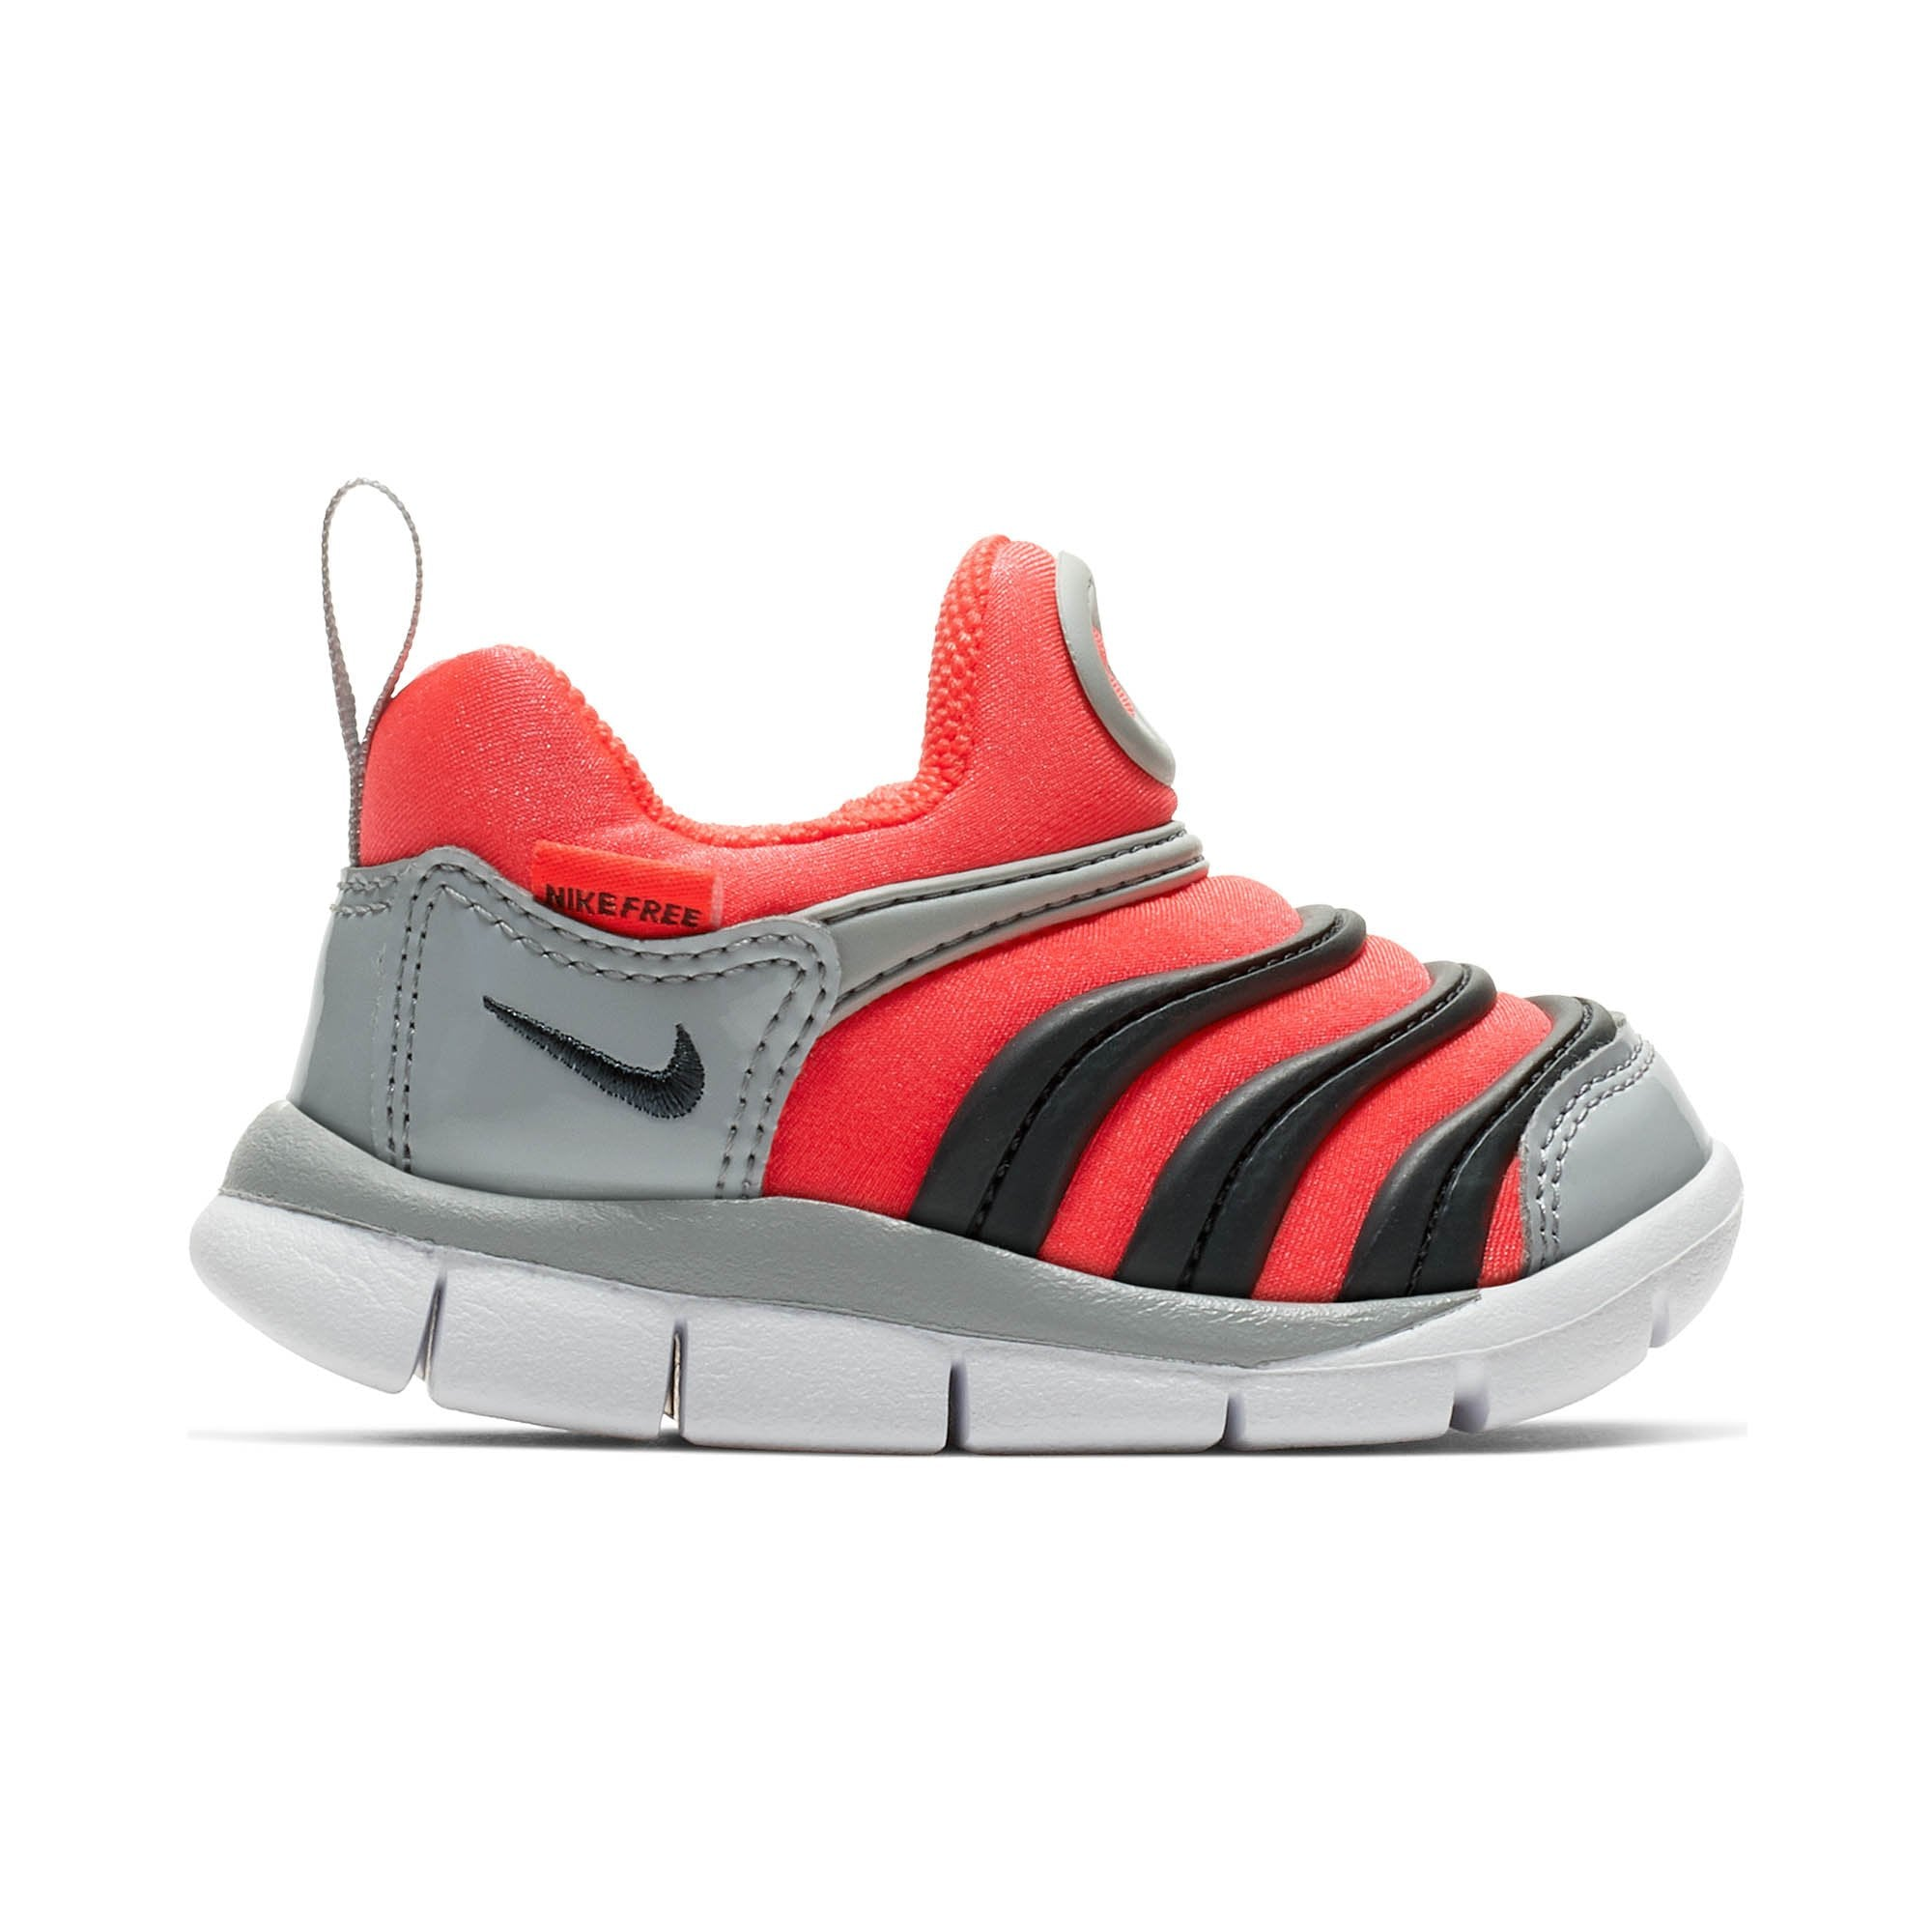 141383d571 Buy Nike Infant Dynamo Free Shoes Online in Singapore | Royal Sporting House